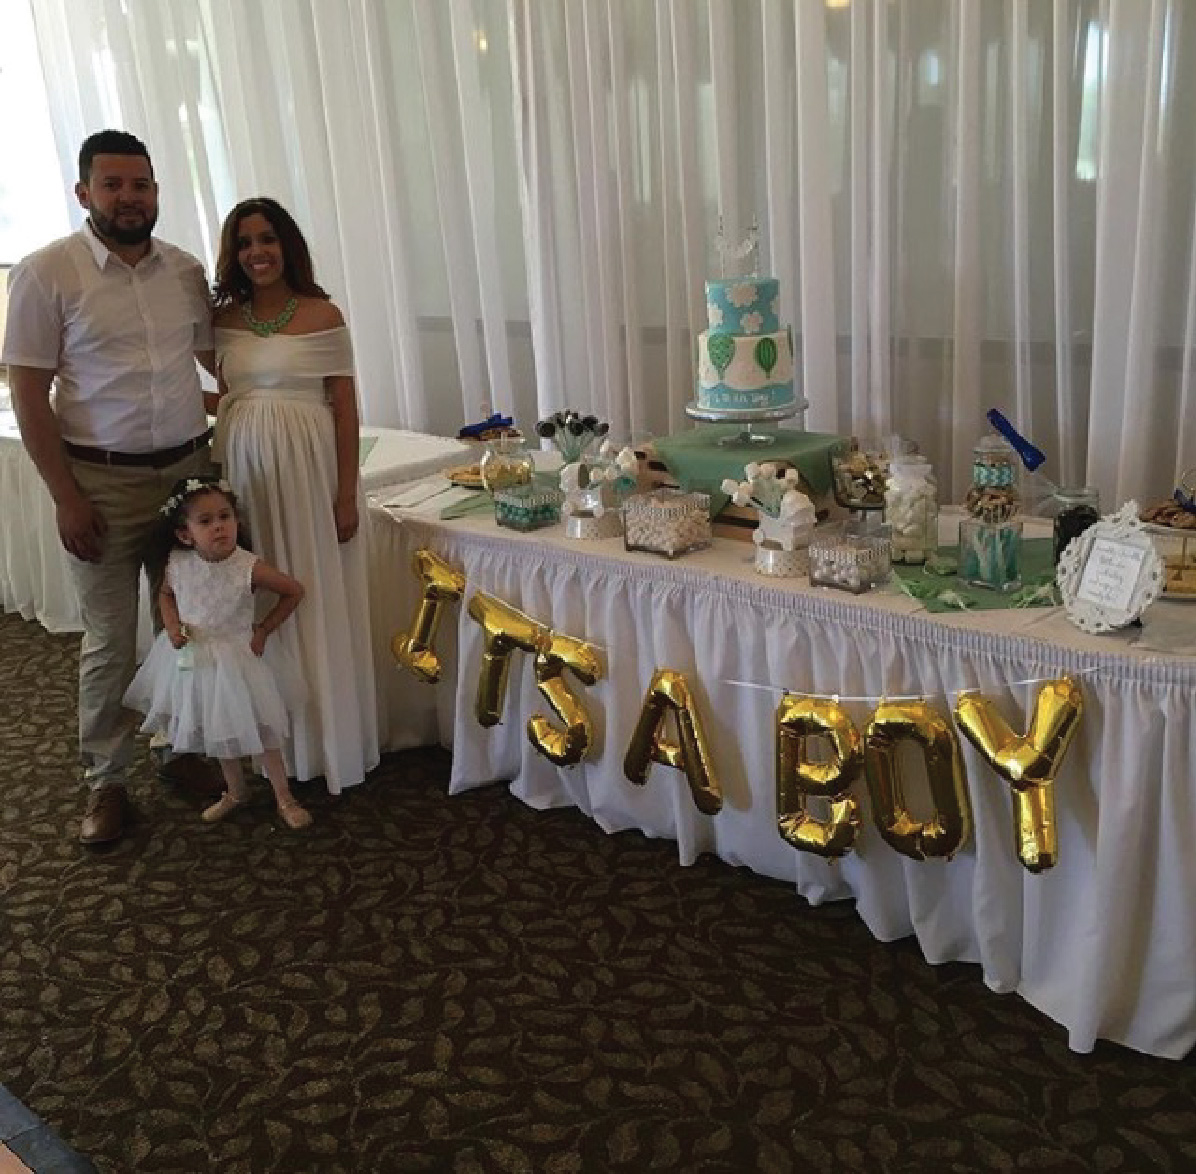 4.la mirada golf course baby shower